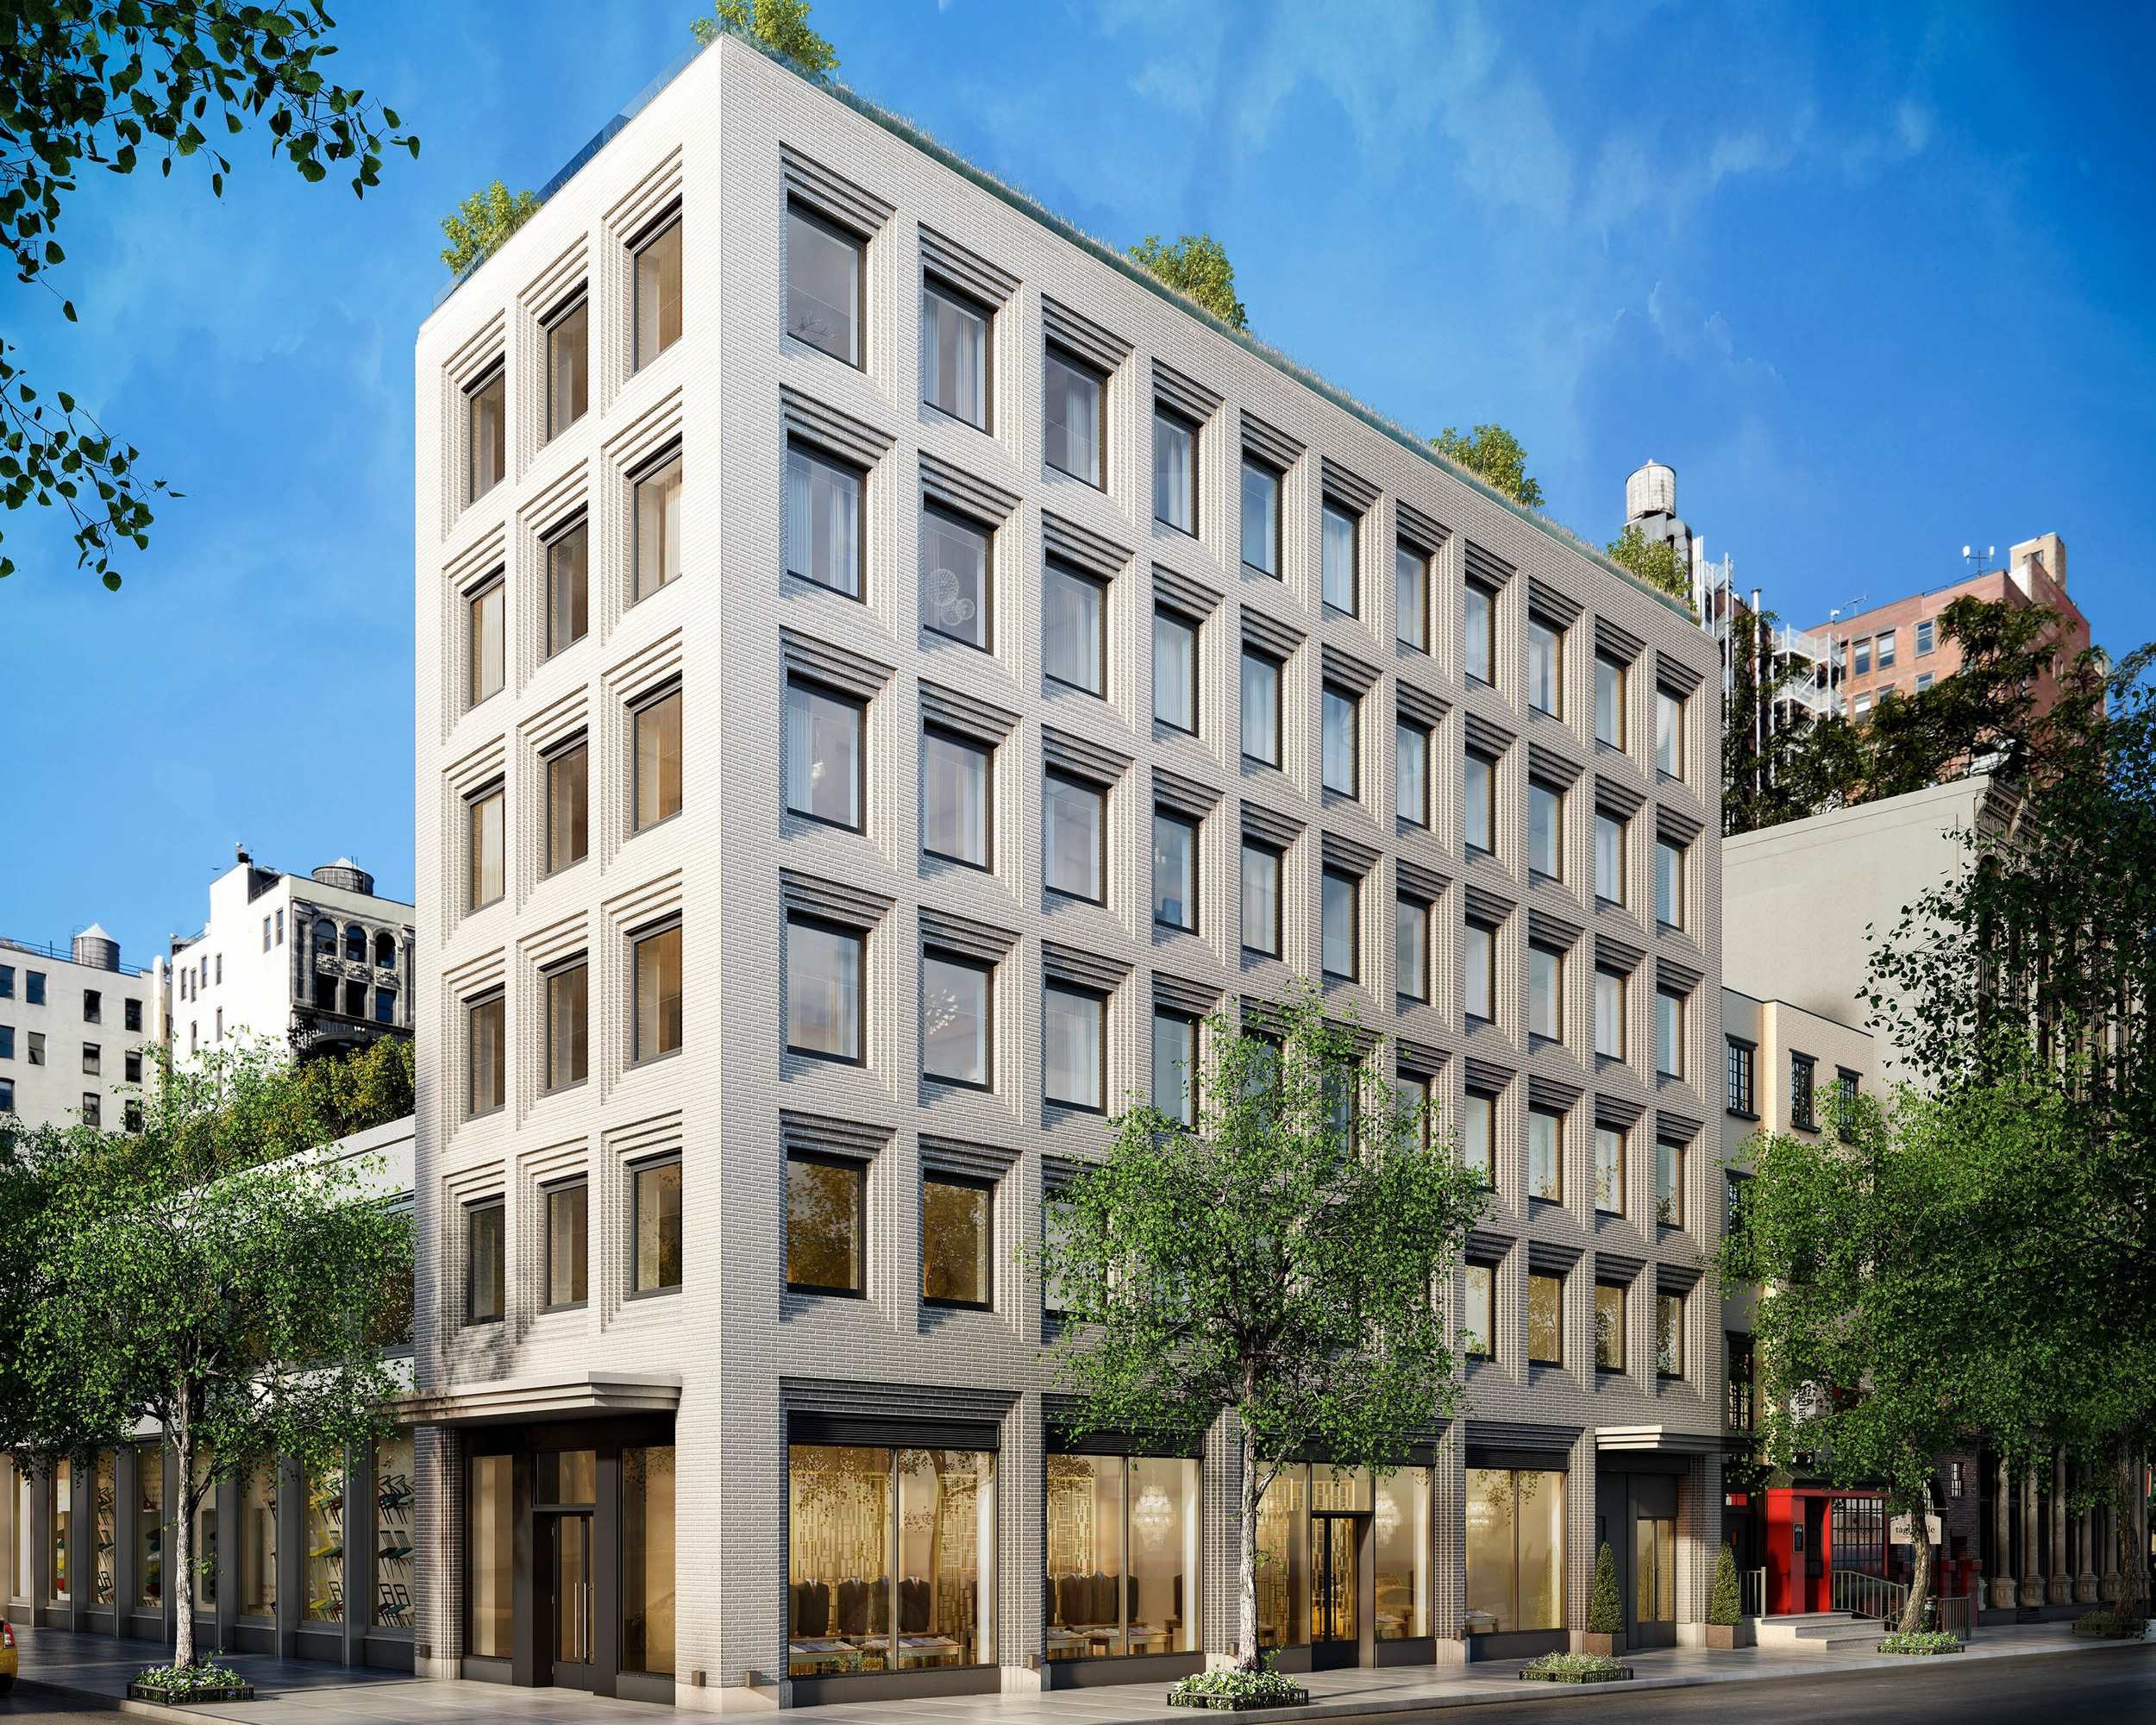 116 UNIVERSITY PLACE - SOLD OUT — $6,995,000 - $9,950,000Nestled just a block away from Union Square, 116 University is a brand new boutique condominium offering five full-floor residences that redefine contemporary Greenwich Village luxury. Designed by experienced firm, Morris Adjmi Architects, the building is a modern expression of the historic neighborhood in which it sits. The façade in particular, with its use of corbelled brick windows, is a nod to the studio windows that were added to houses and apartments when the Village was the domain of artists and bohemians.